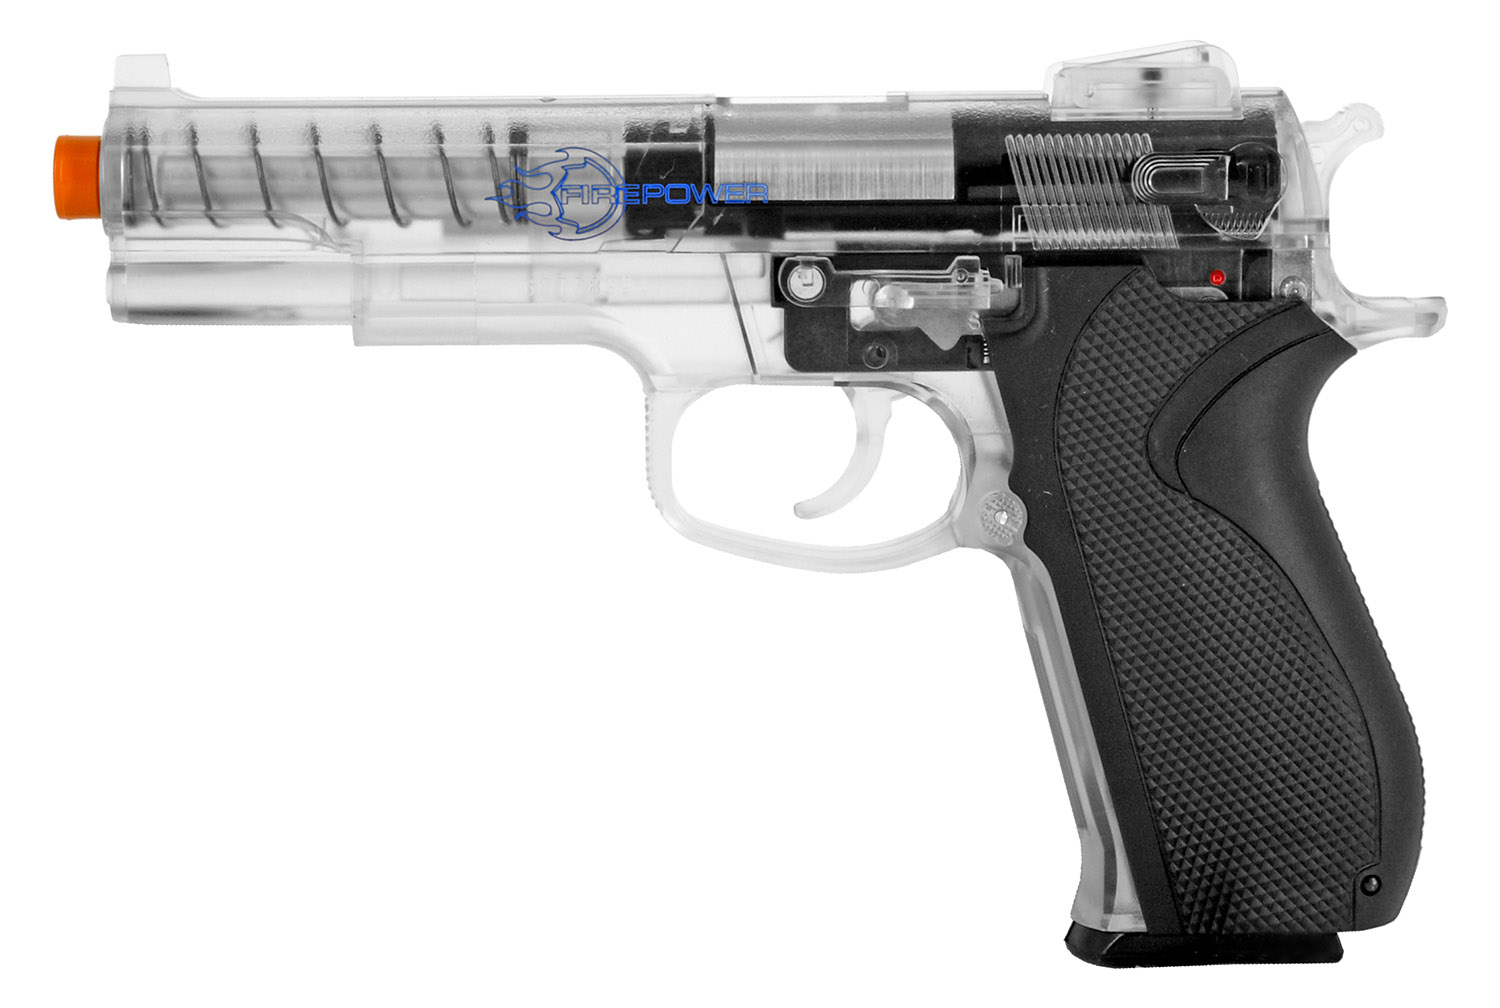 Firepower .45 Spring Powered Airsoft Pistol